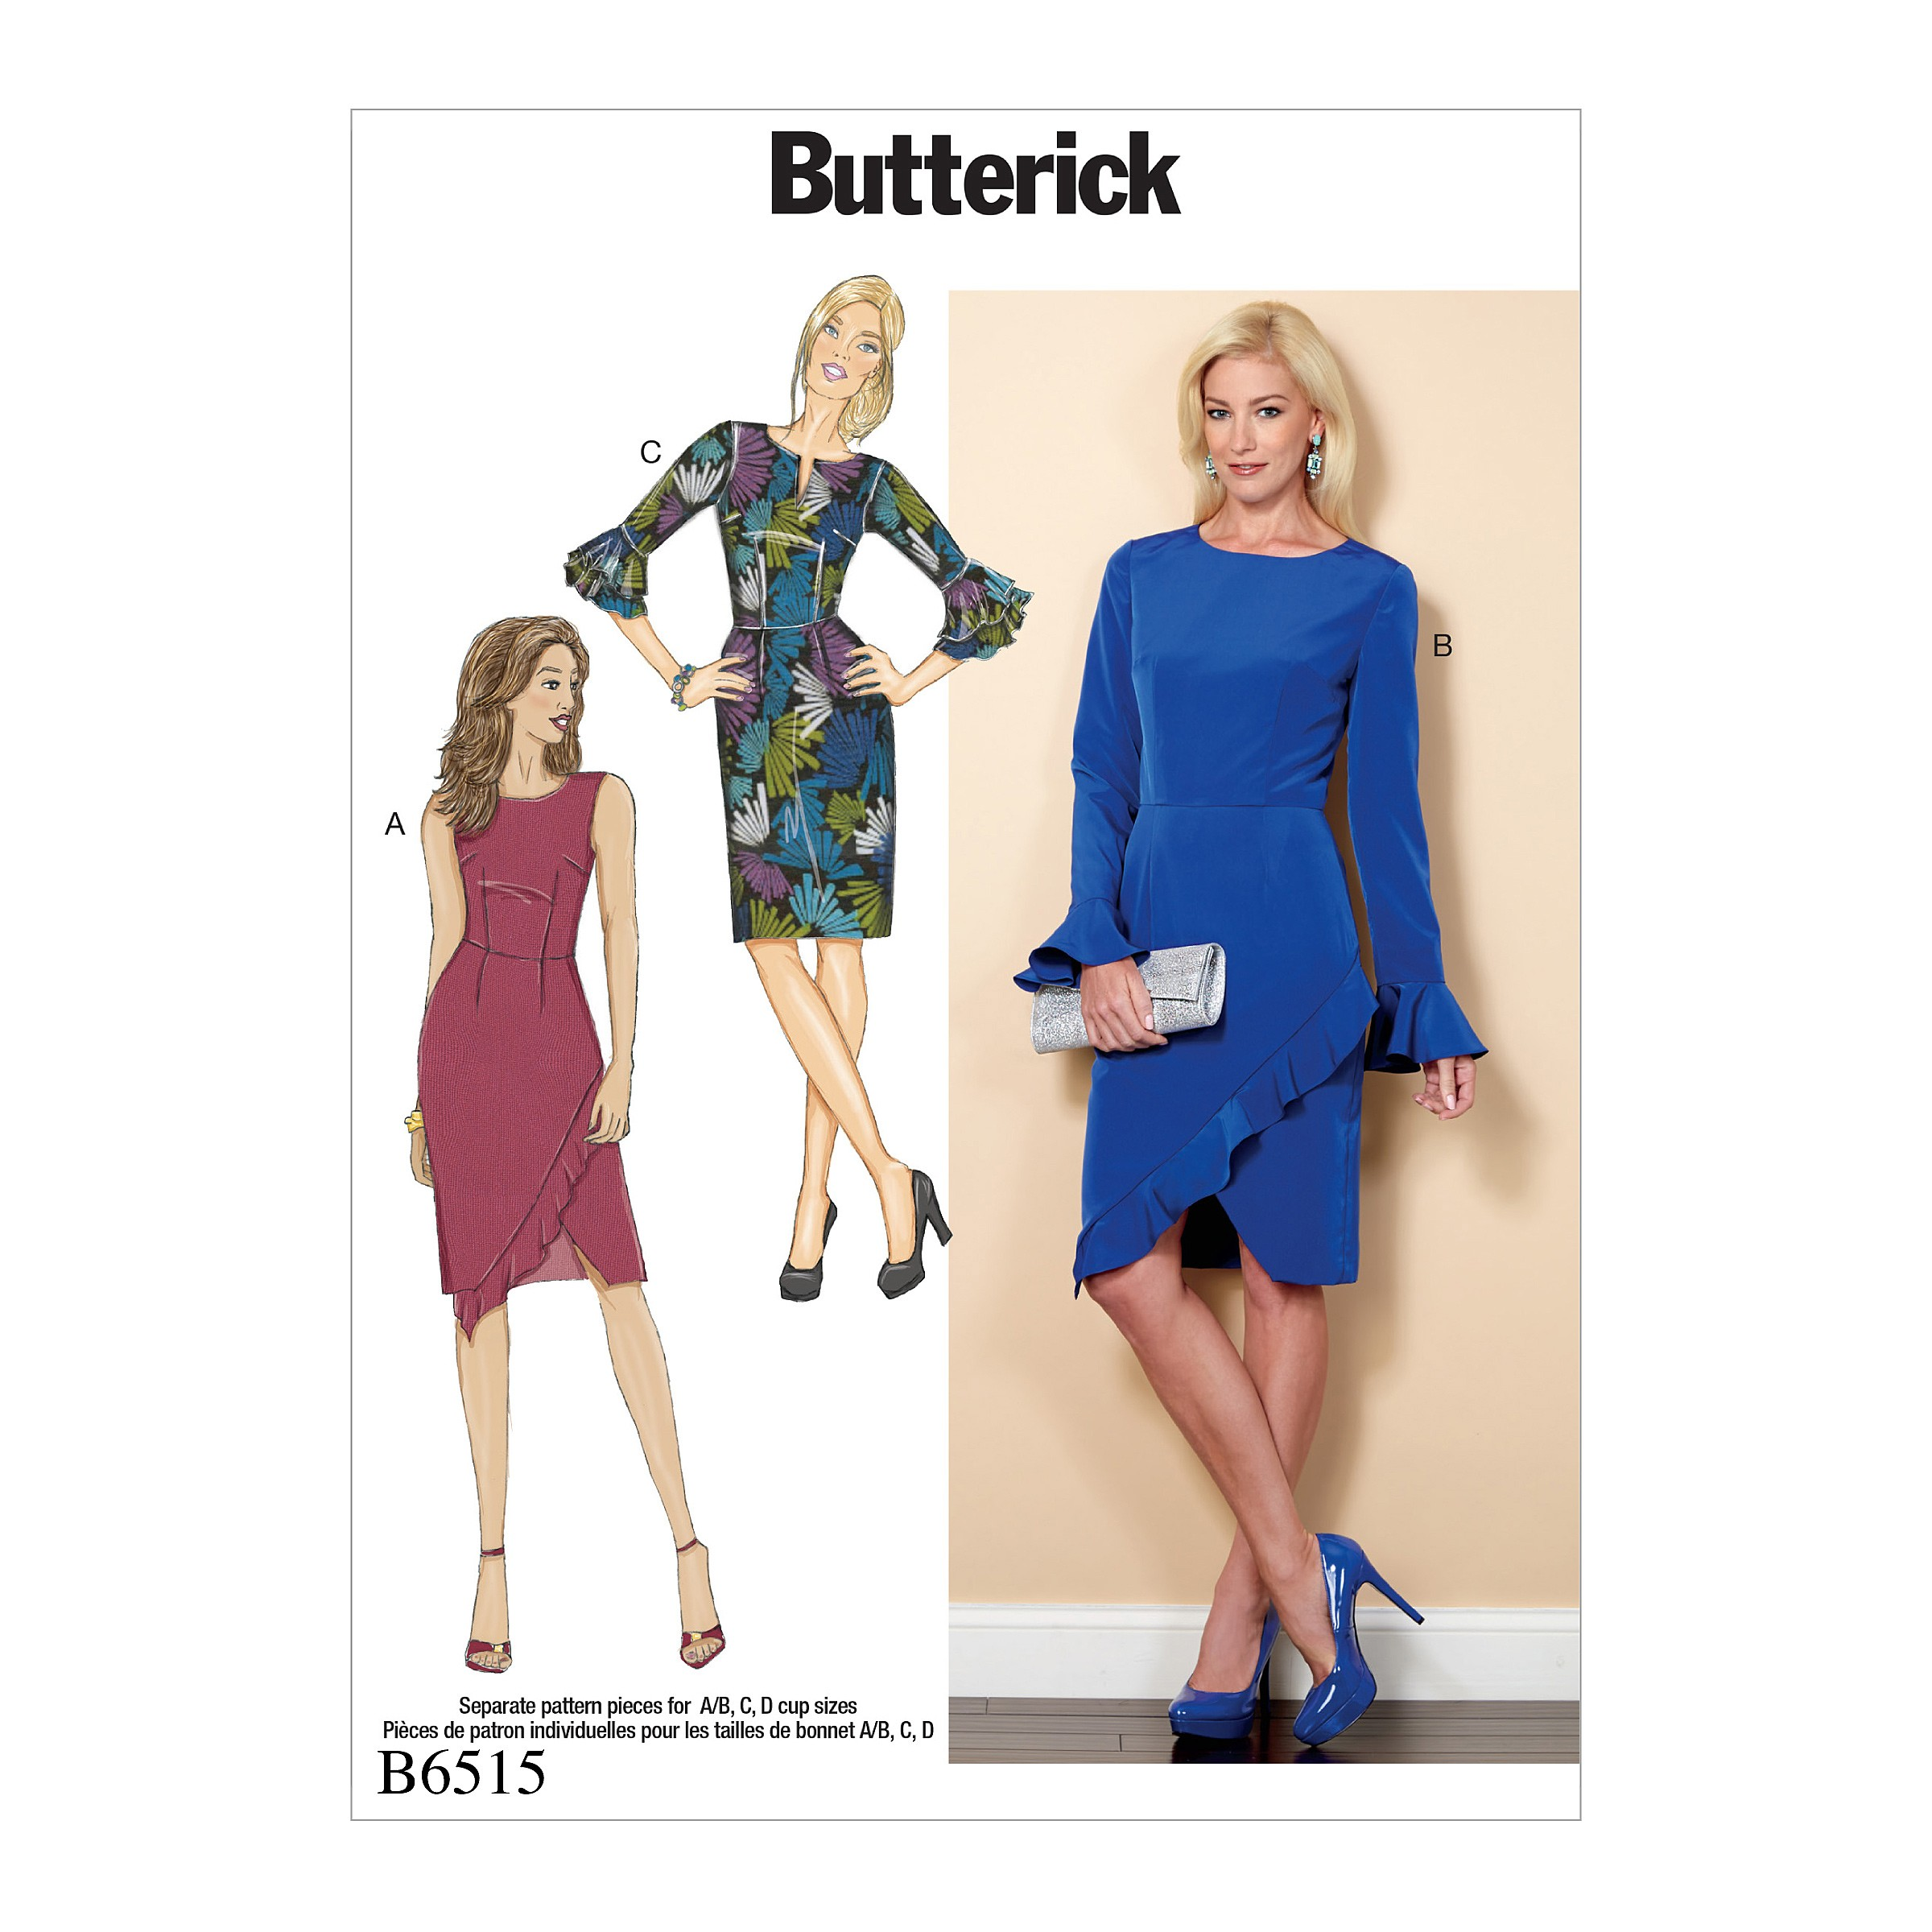 Butterick Sewing Pattern 6515 Misses' Dress With Ruffle Variations